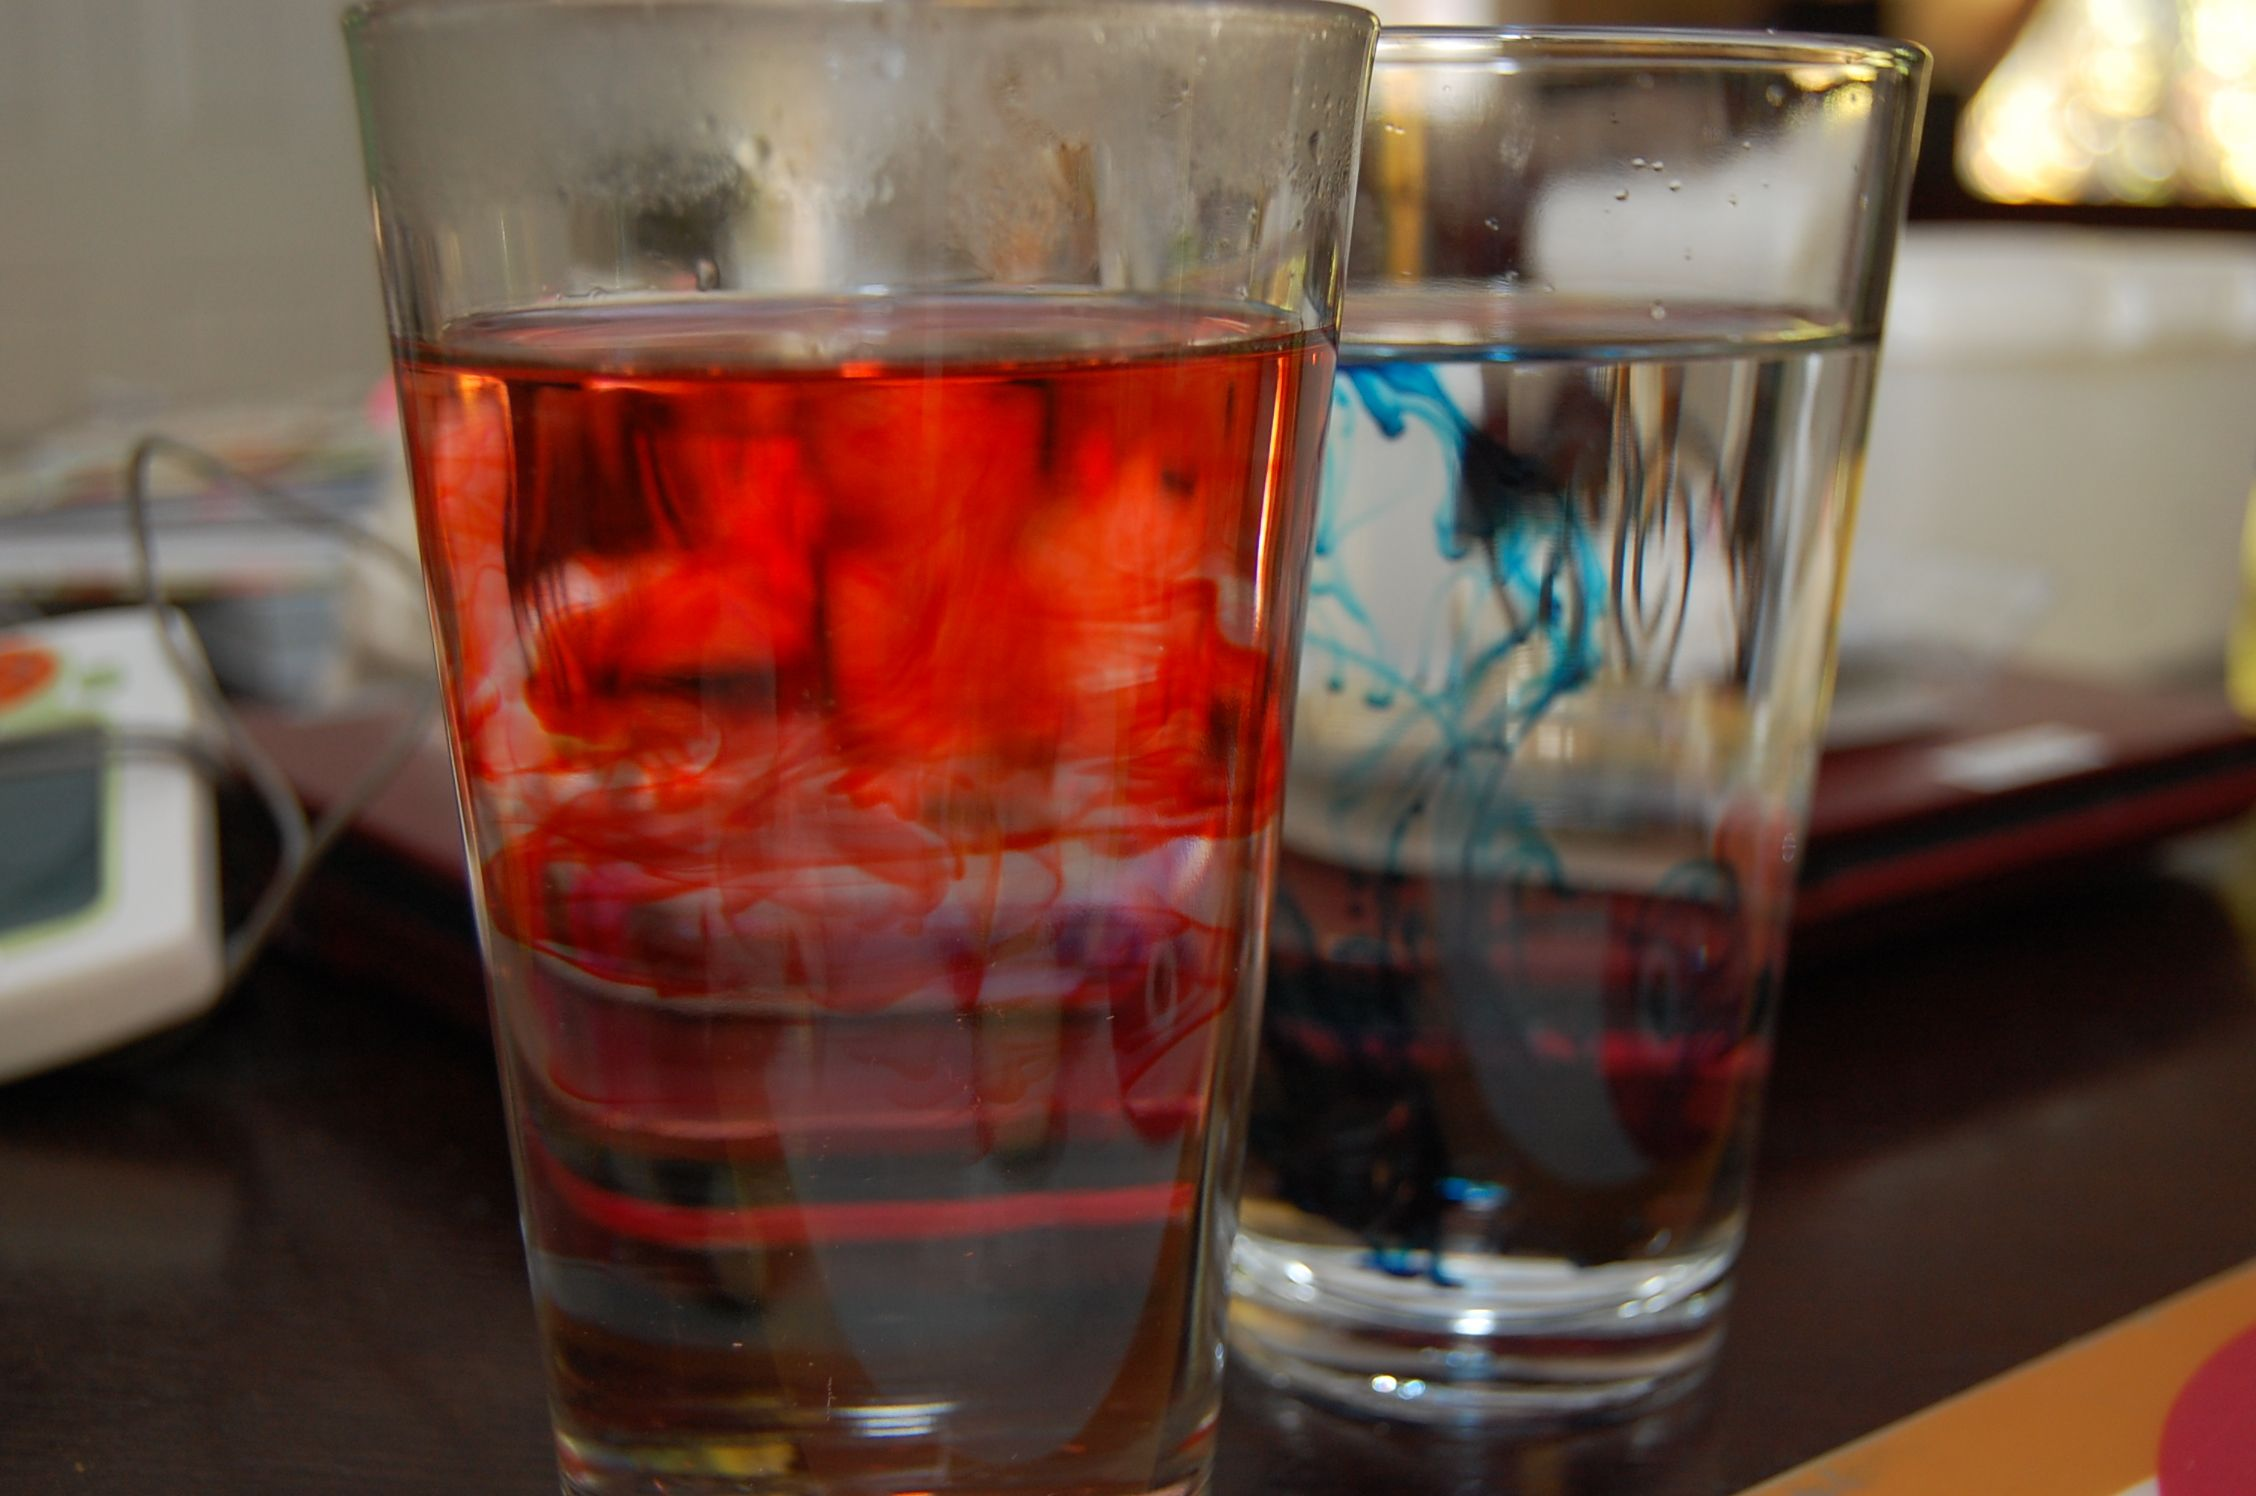 Temperature In Action Use Food Coloring And Hot And Cold Water To